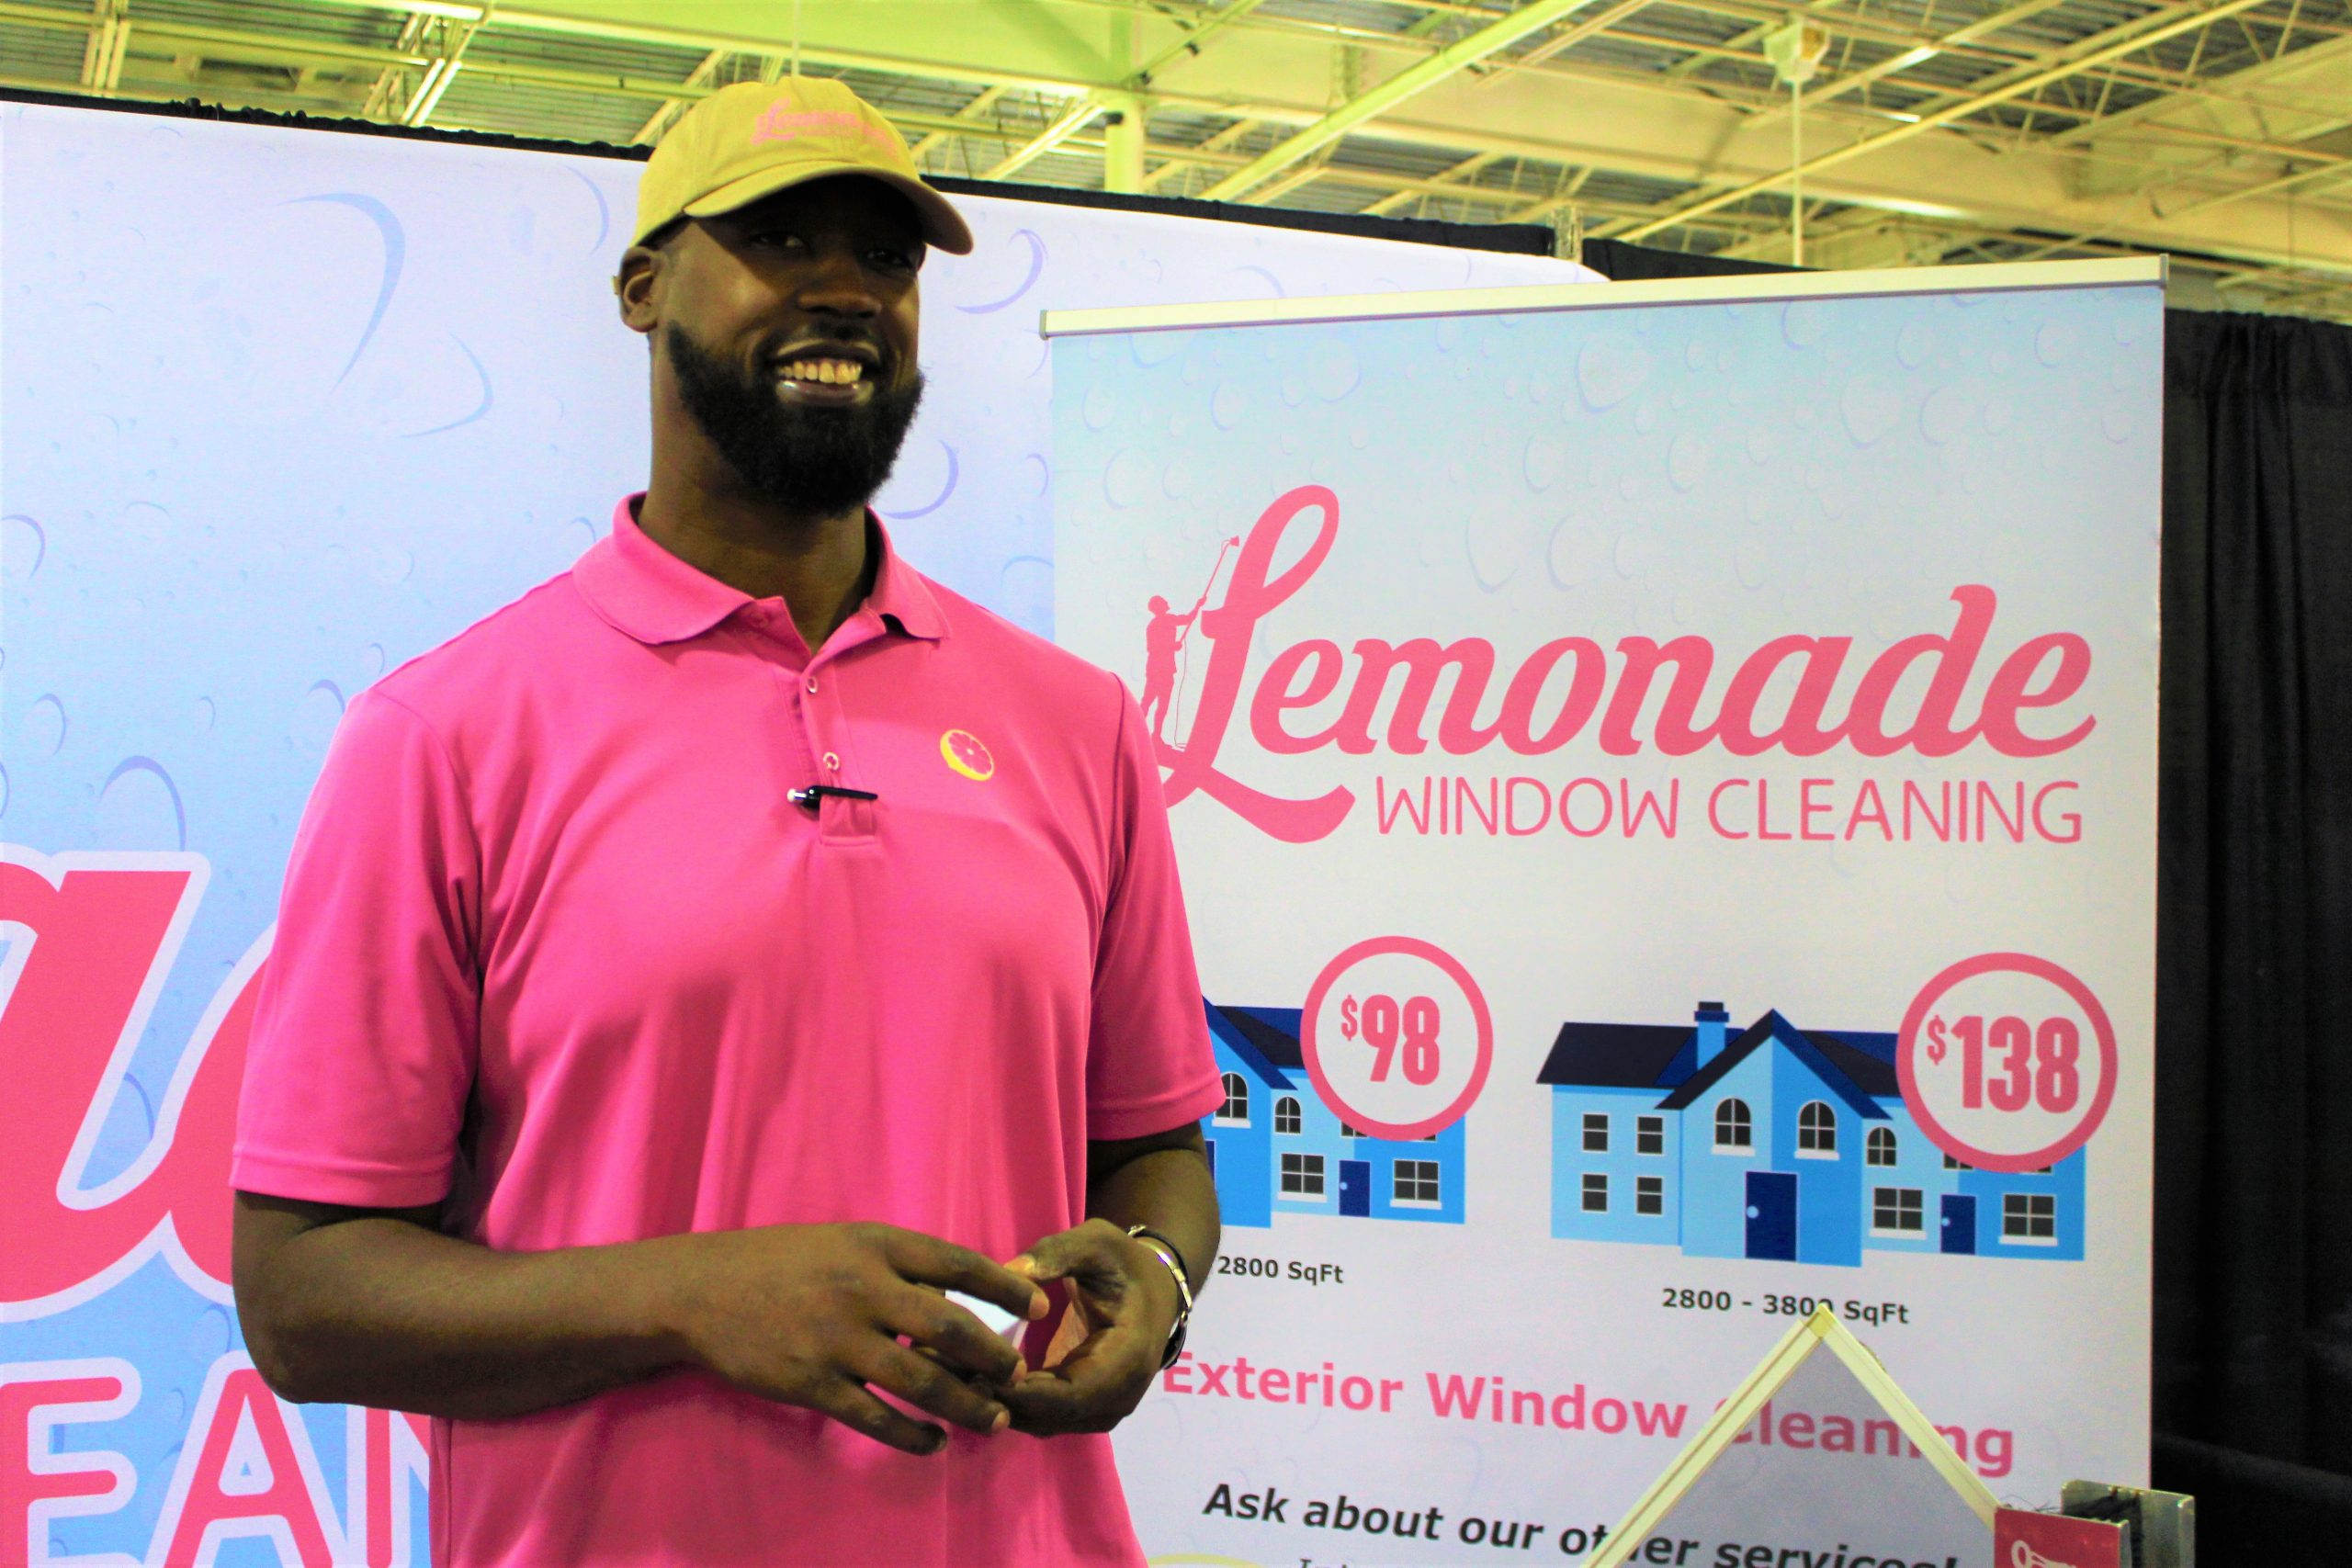 Lemonade Window Cleaning at Jacksonville Home & Garden Show